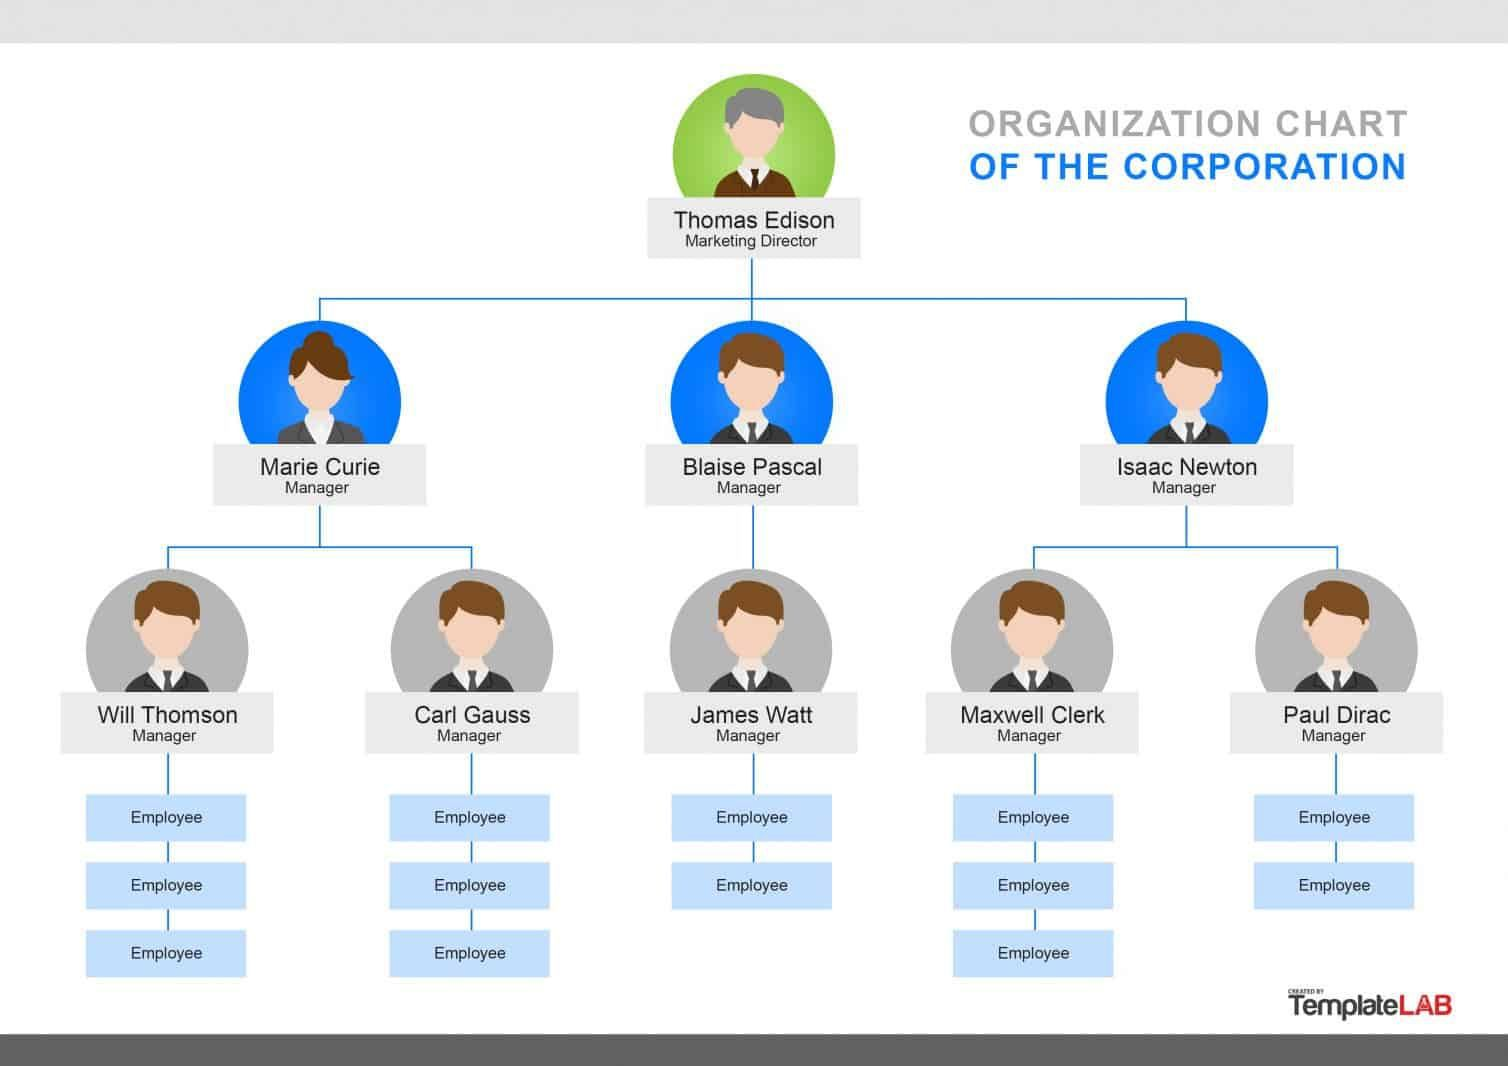 000 Singular Organizational Chart Template Word Concept  2010 2007 Free DownloadFull